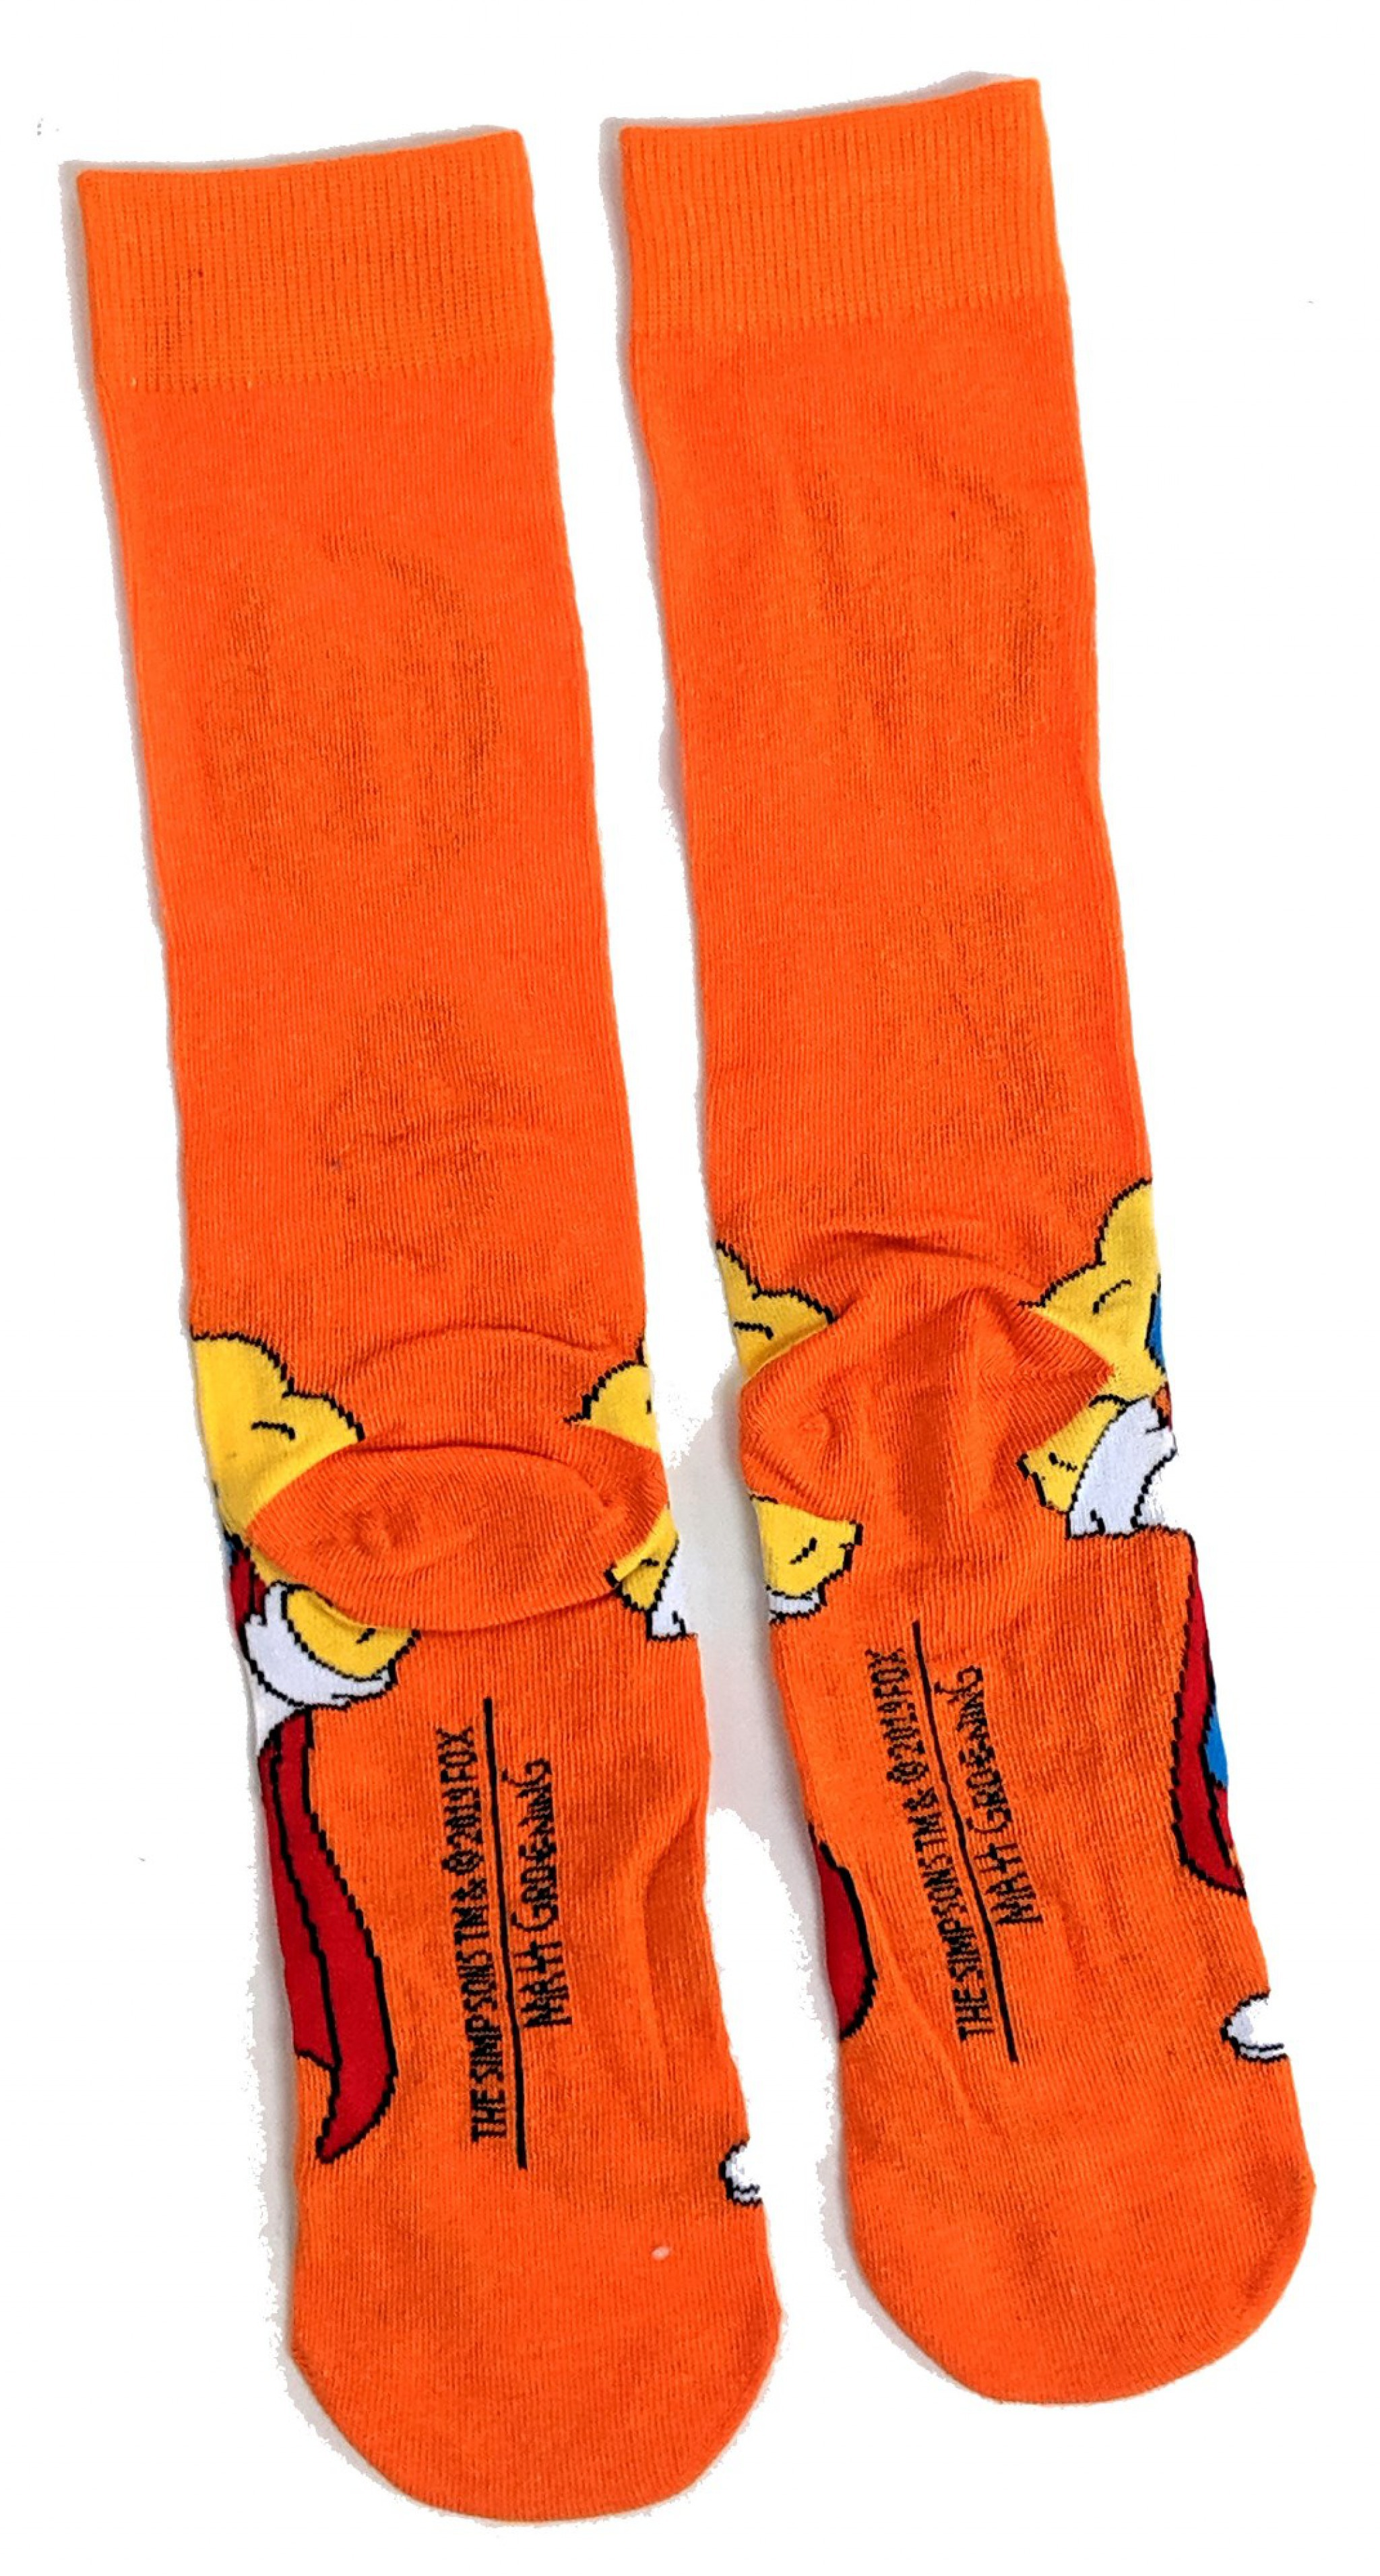 Homme Simpsons Duff Beer Duffman Barry Huffman chaussettes UK 6-11//EUR 39-45//US 7-12